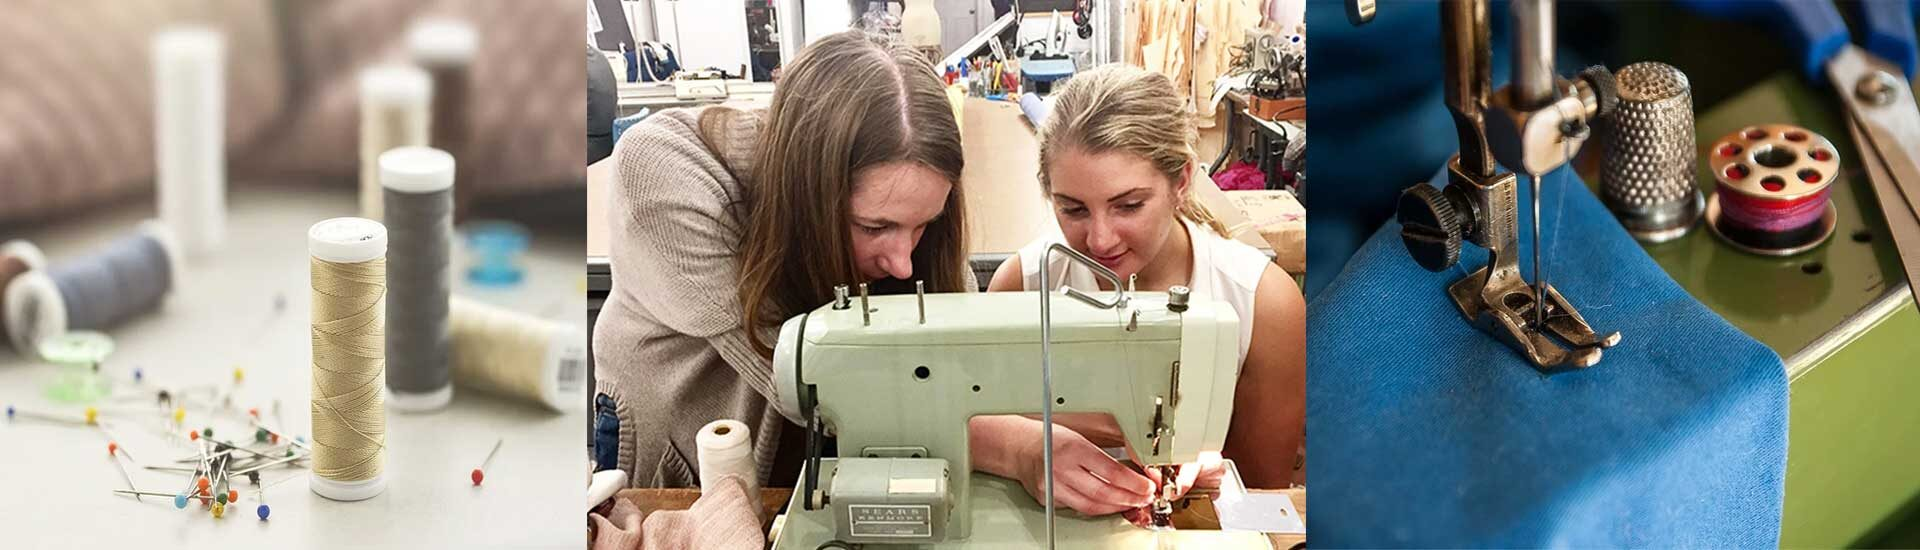 Sewing-Tricks-and-Tips